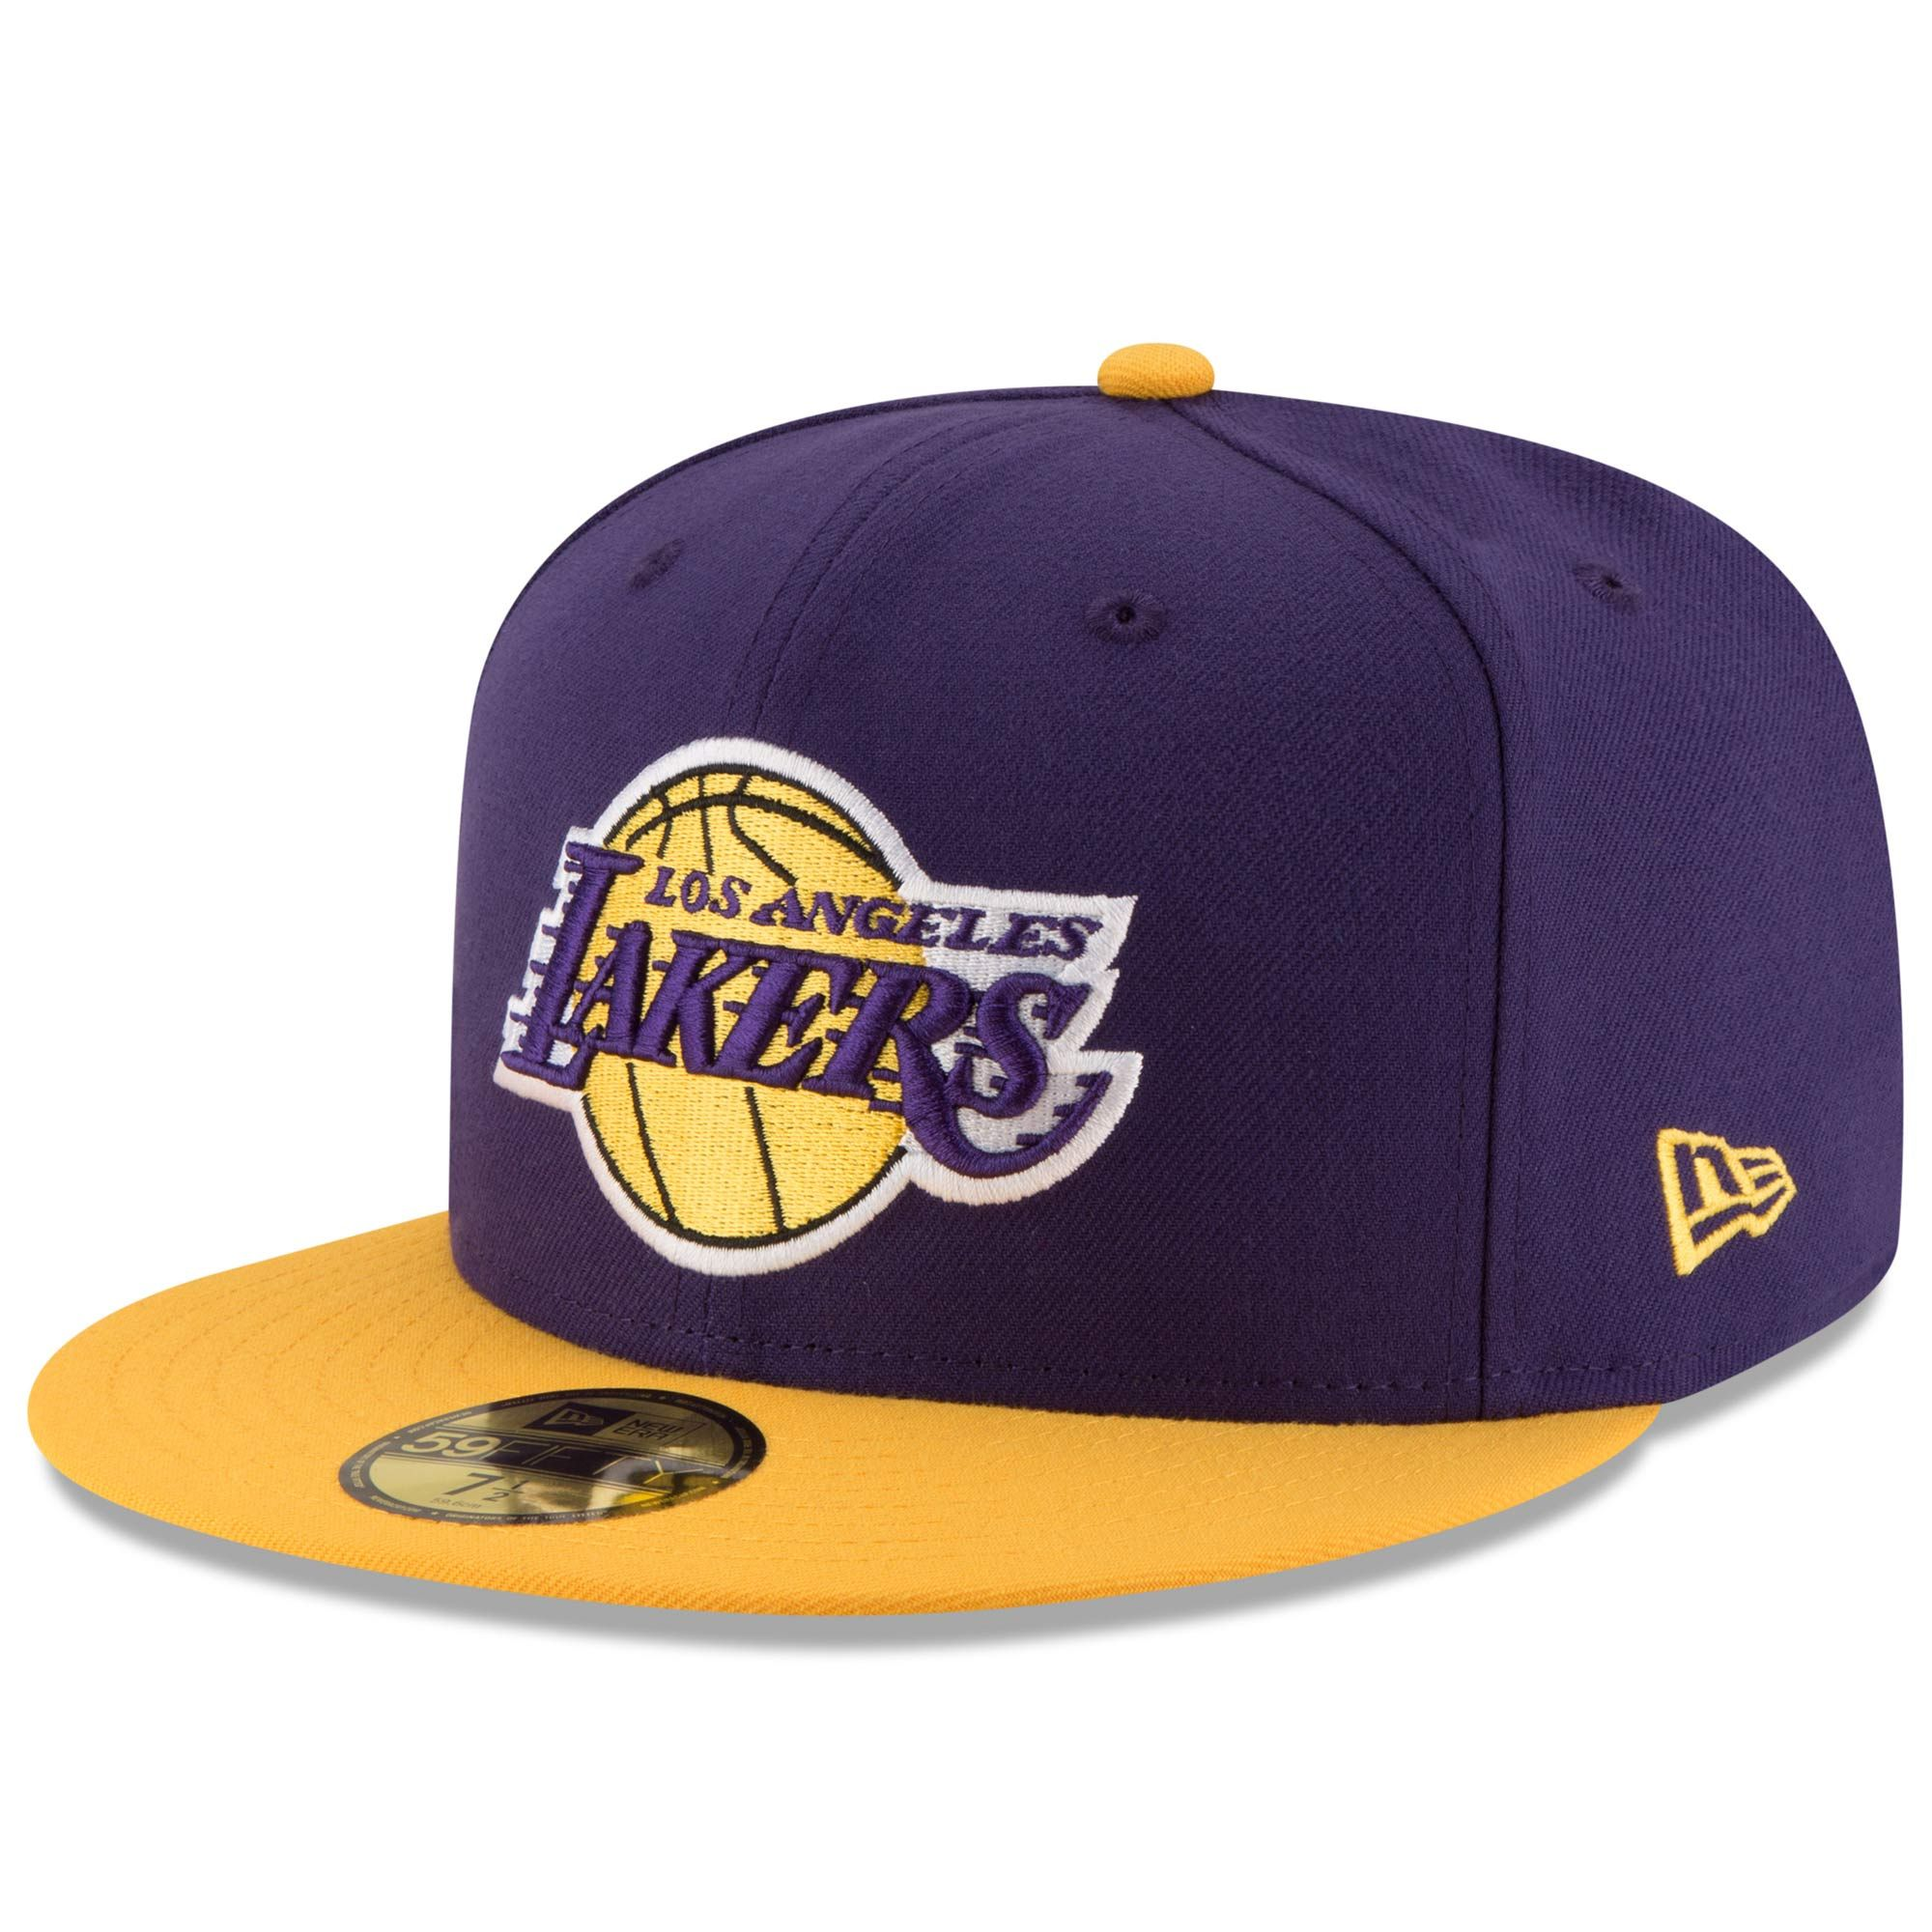 Los Angeles Lakers New Era Official Team Color 2tone 59fifty Fitted Hat Purple Gold In 2020 Los Angeles Lakers Fitted Hats Lakers Hat